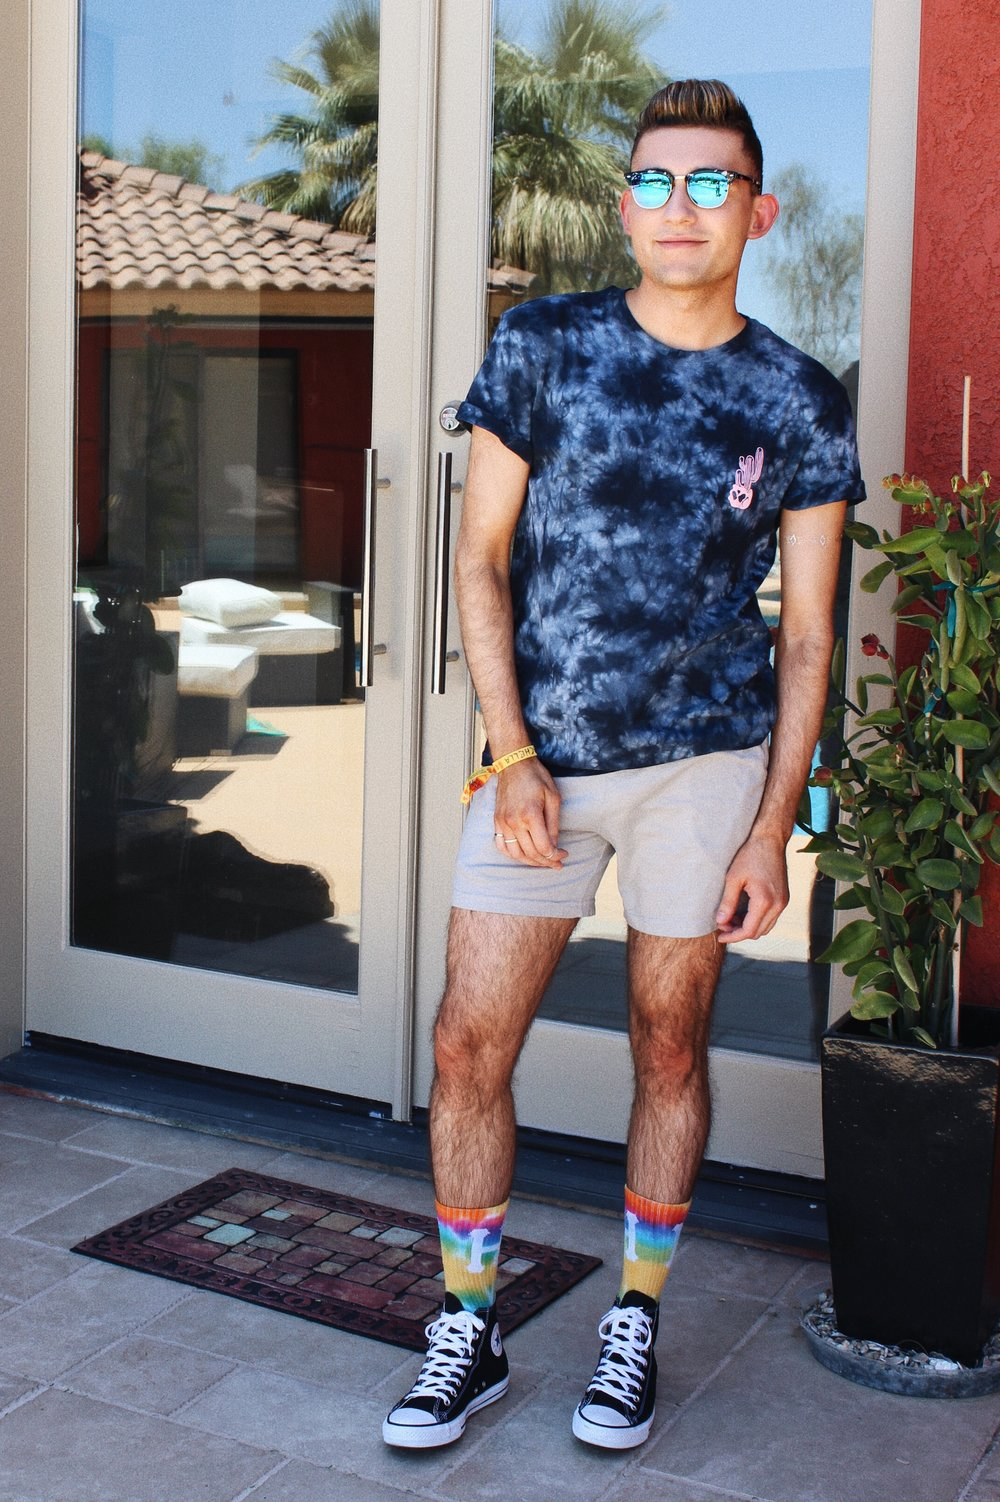 3ae1328f30a h m SHIRT • american apparel SHORTS • huf SOCKS diff SUNGLASSES • converse  SHOES